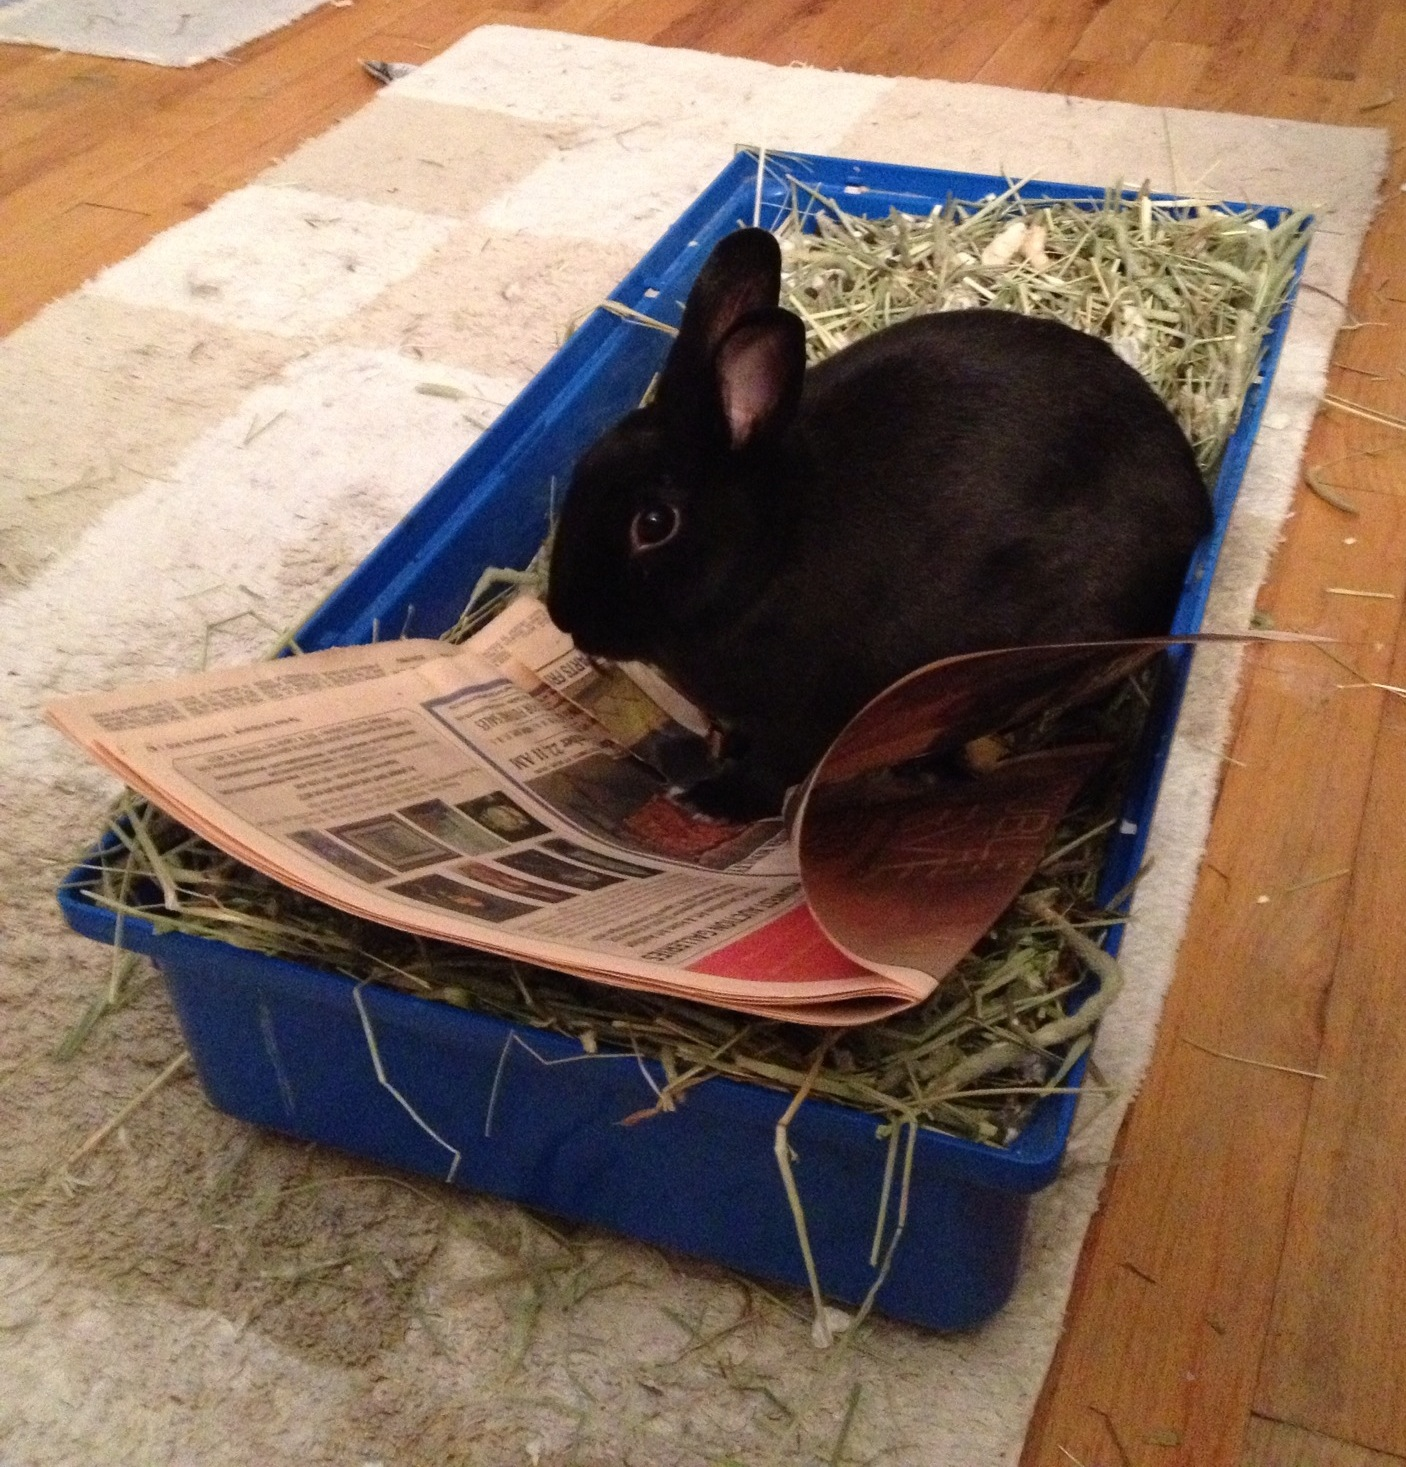 Bunny Reads the Paper in the Litterbox